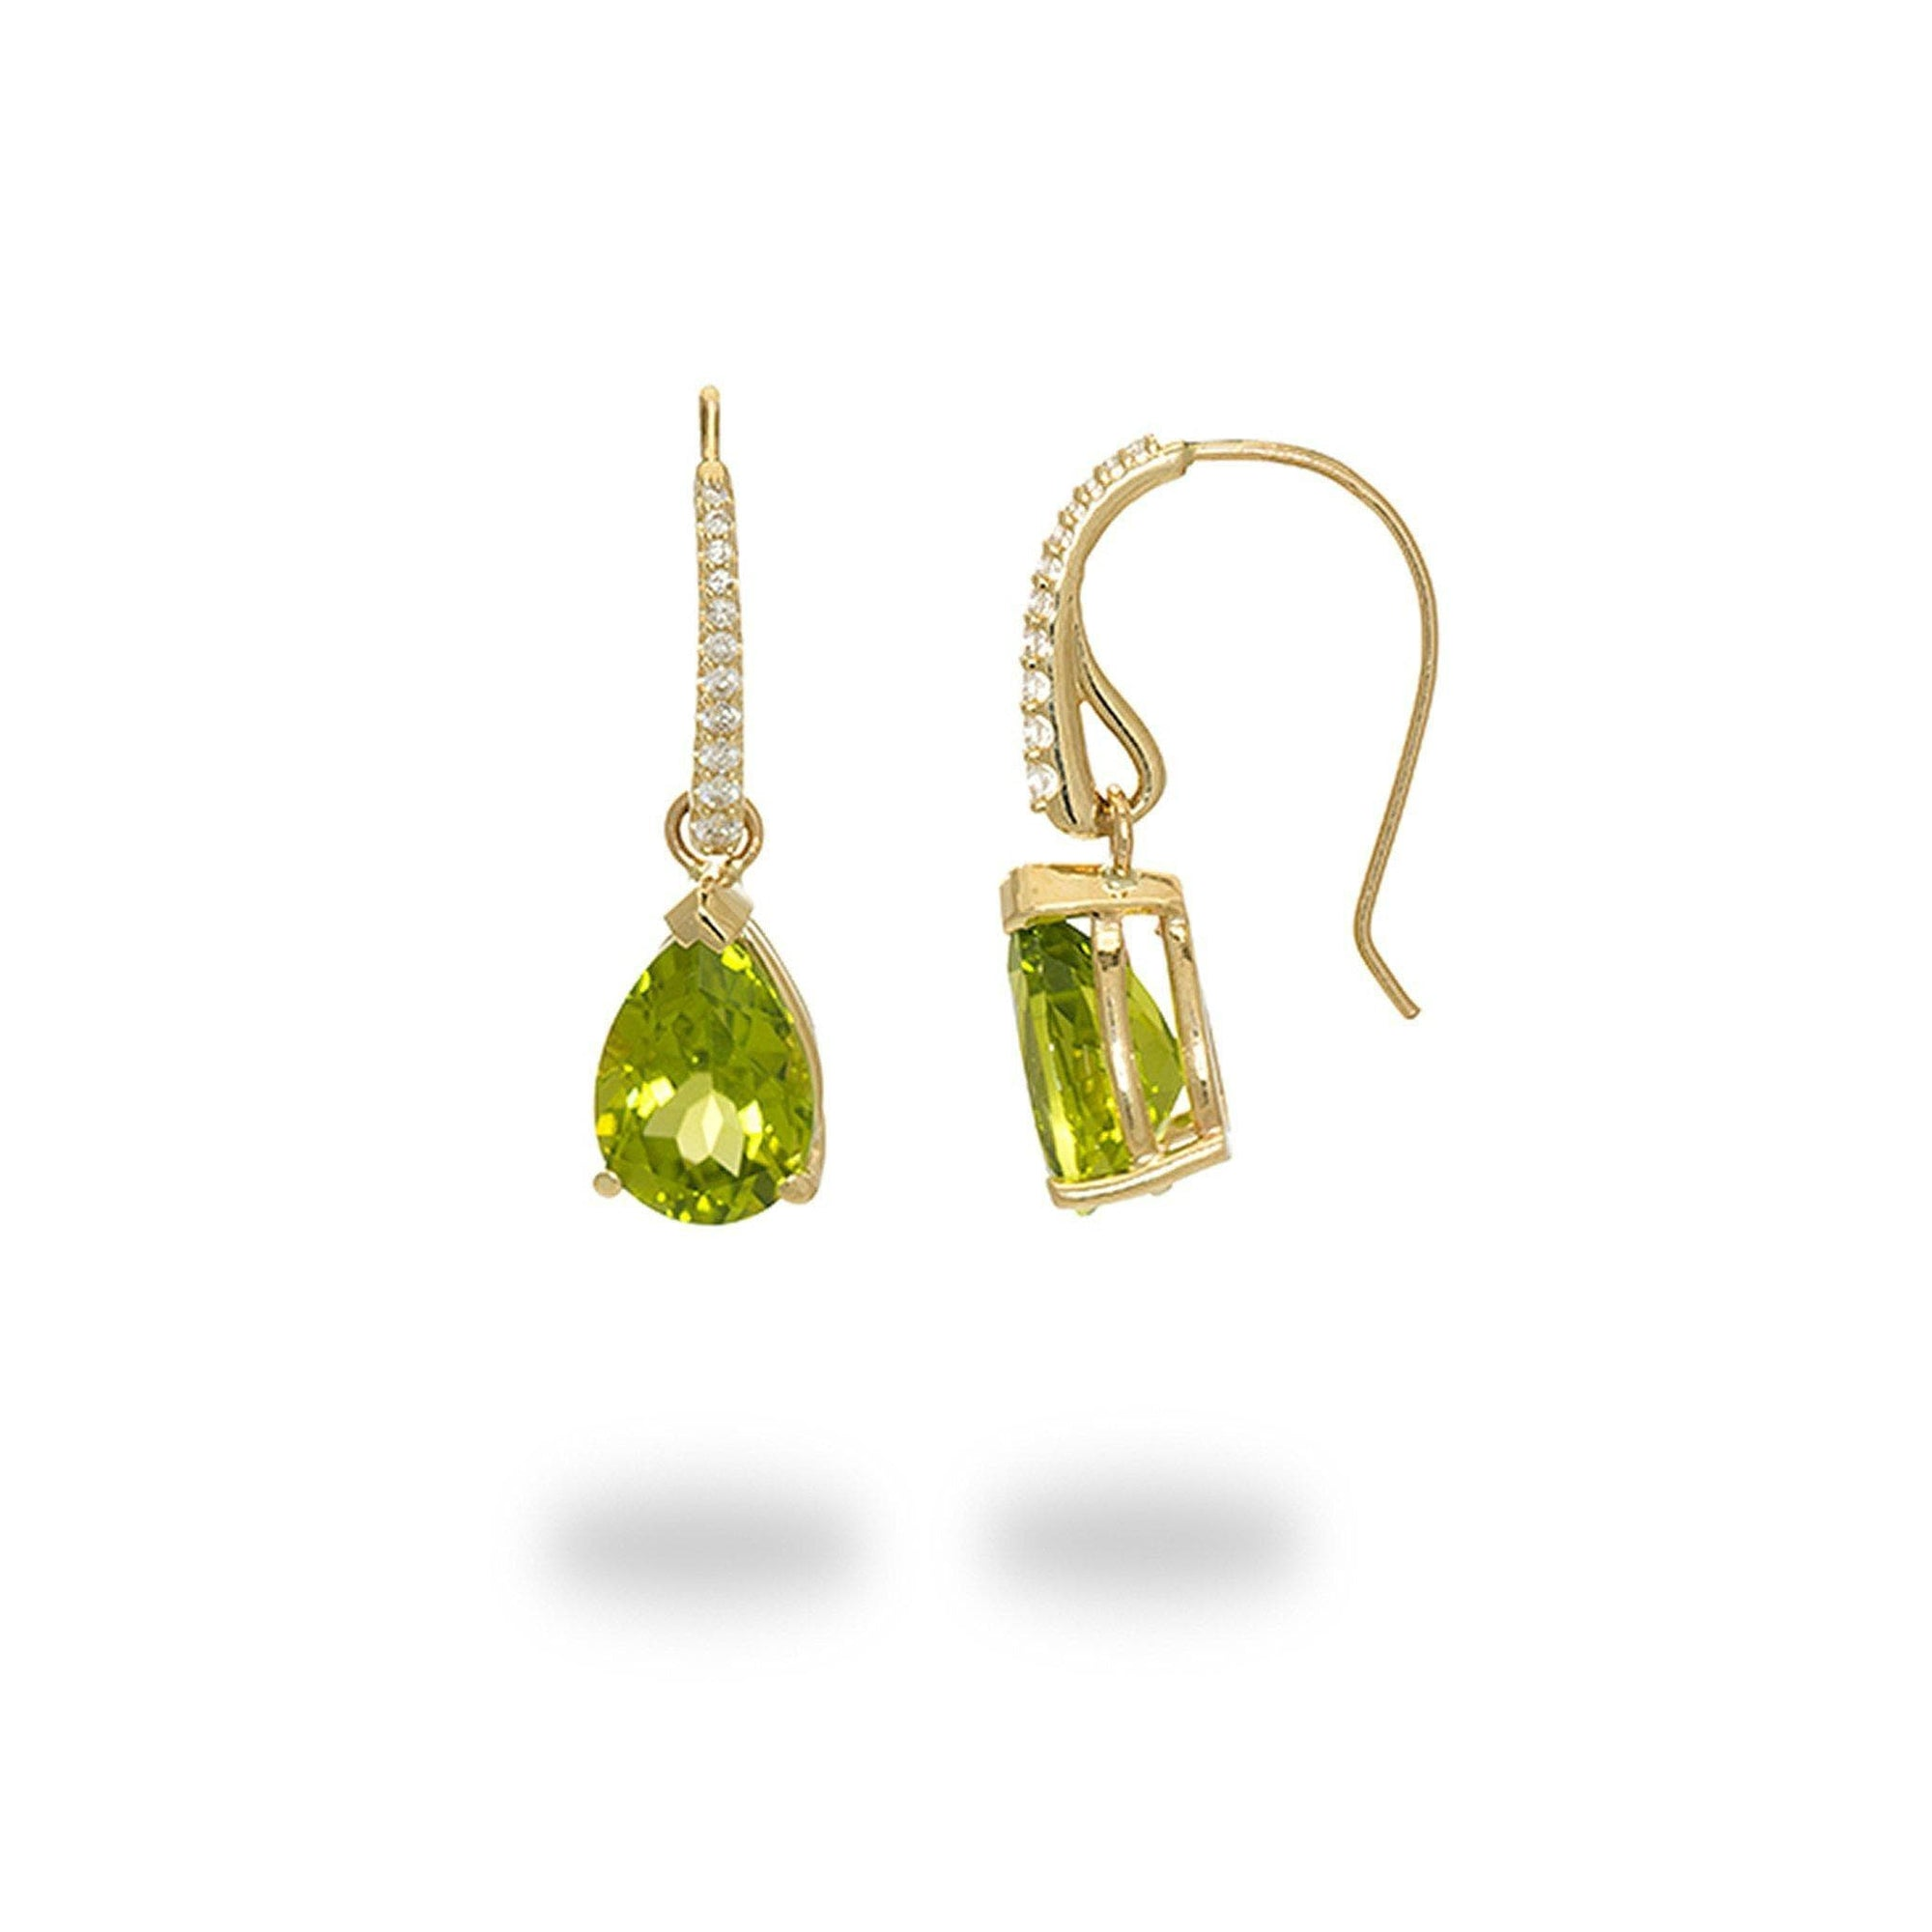 Peridot Hook Earrings with Diamonds in 14K Yellow Gold - Maui Divers Jewelry